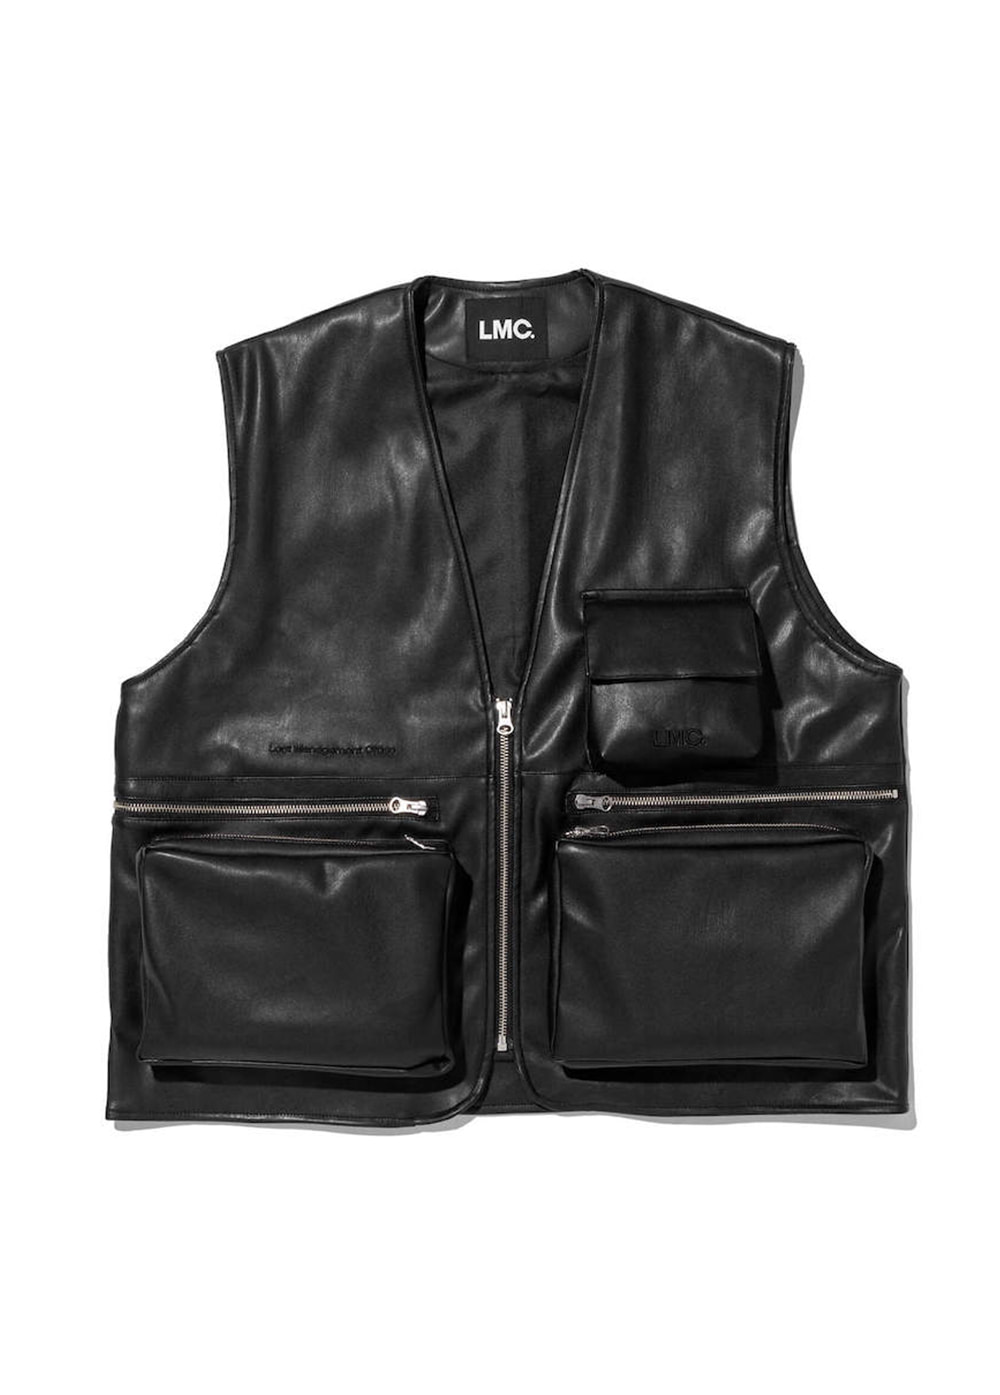 LMC LEATHER UTILITY VEST black